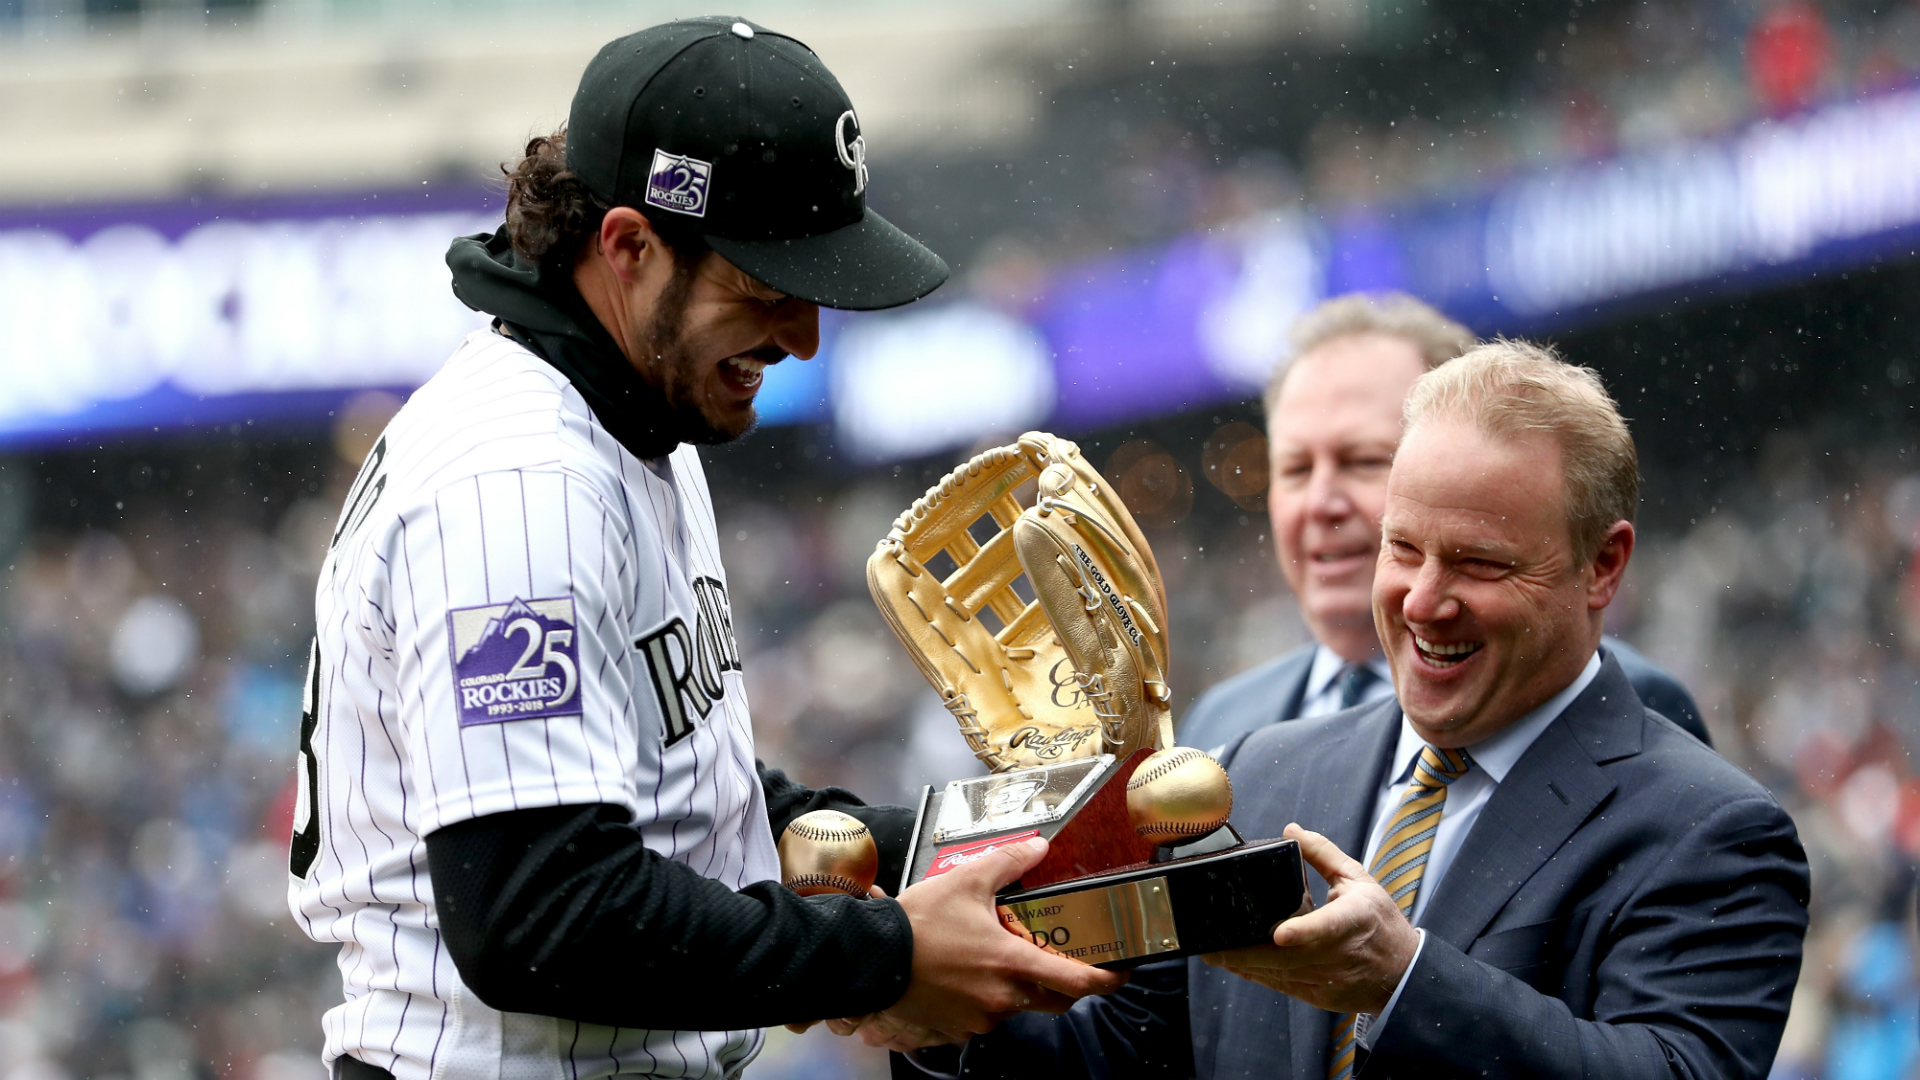 The Rockies third baseman notched his seventh career Gold Glove while the Red Sox right fielder won his fourth.